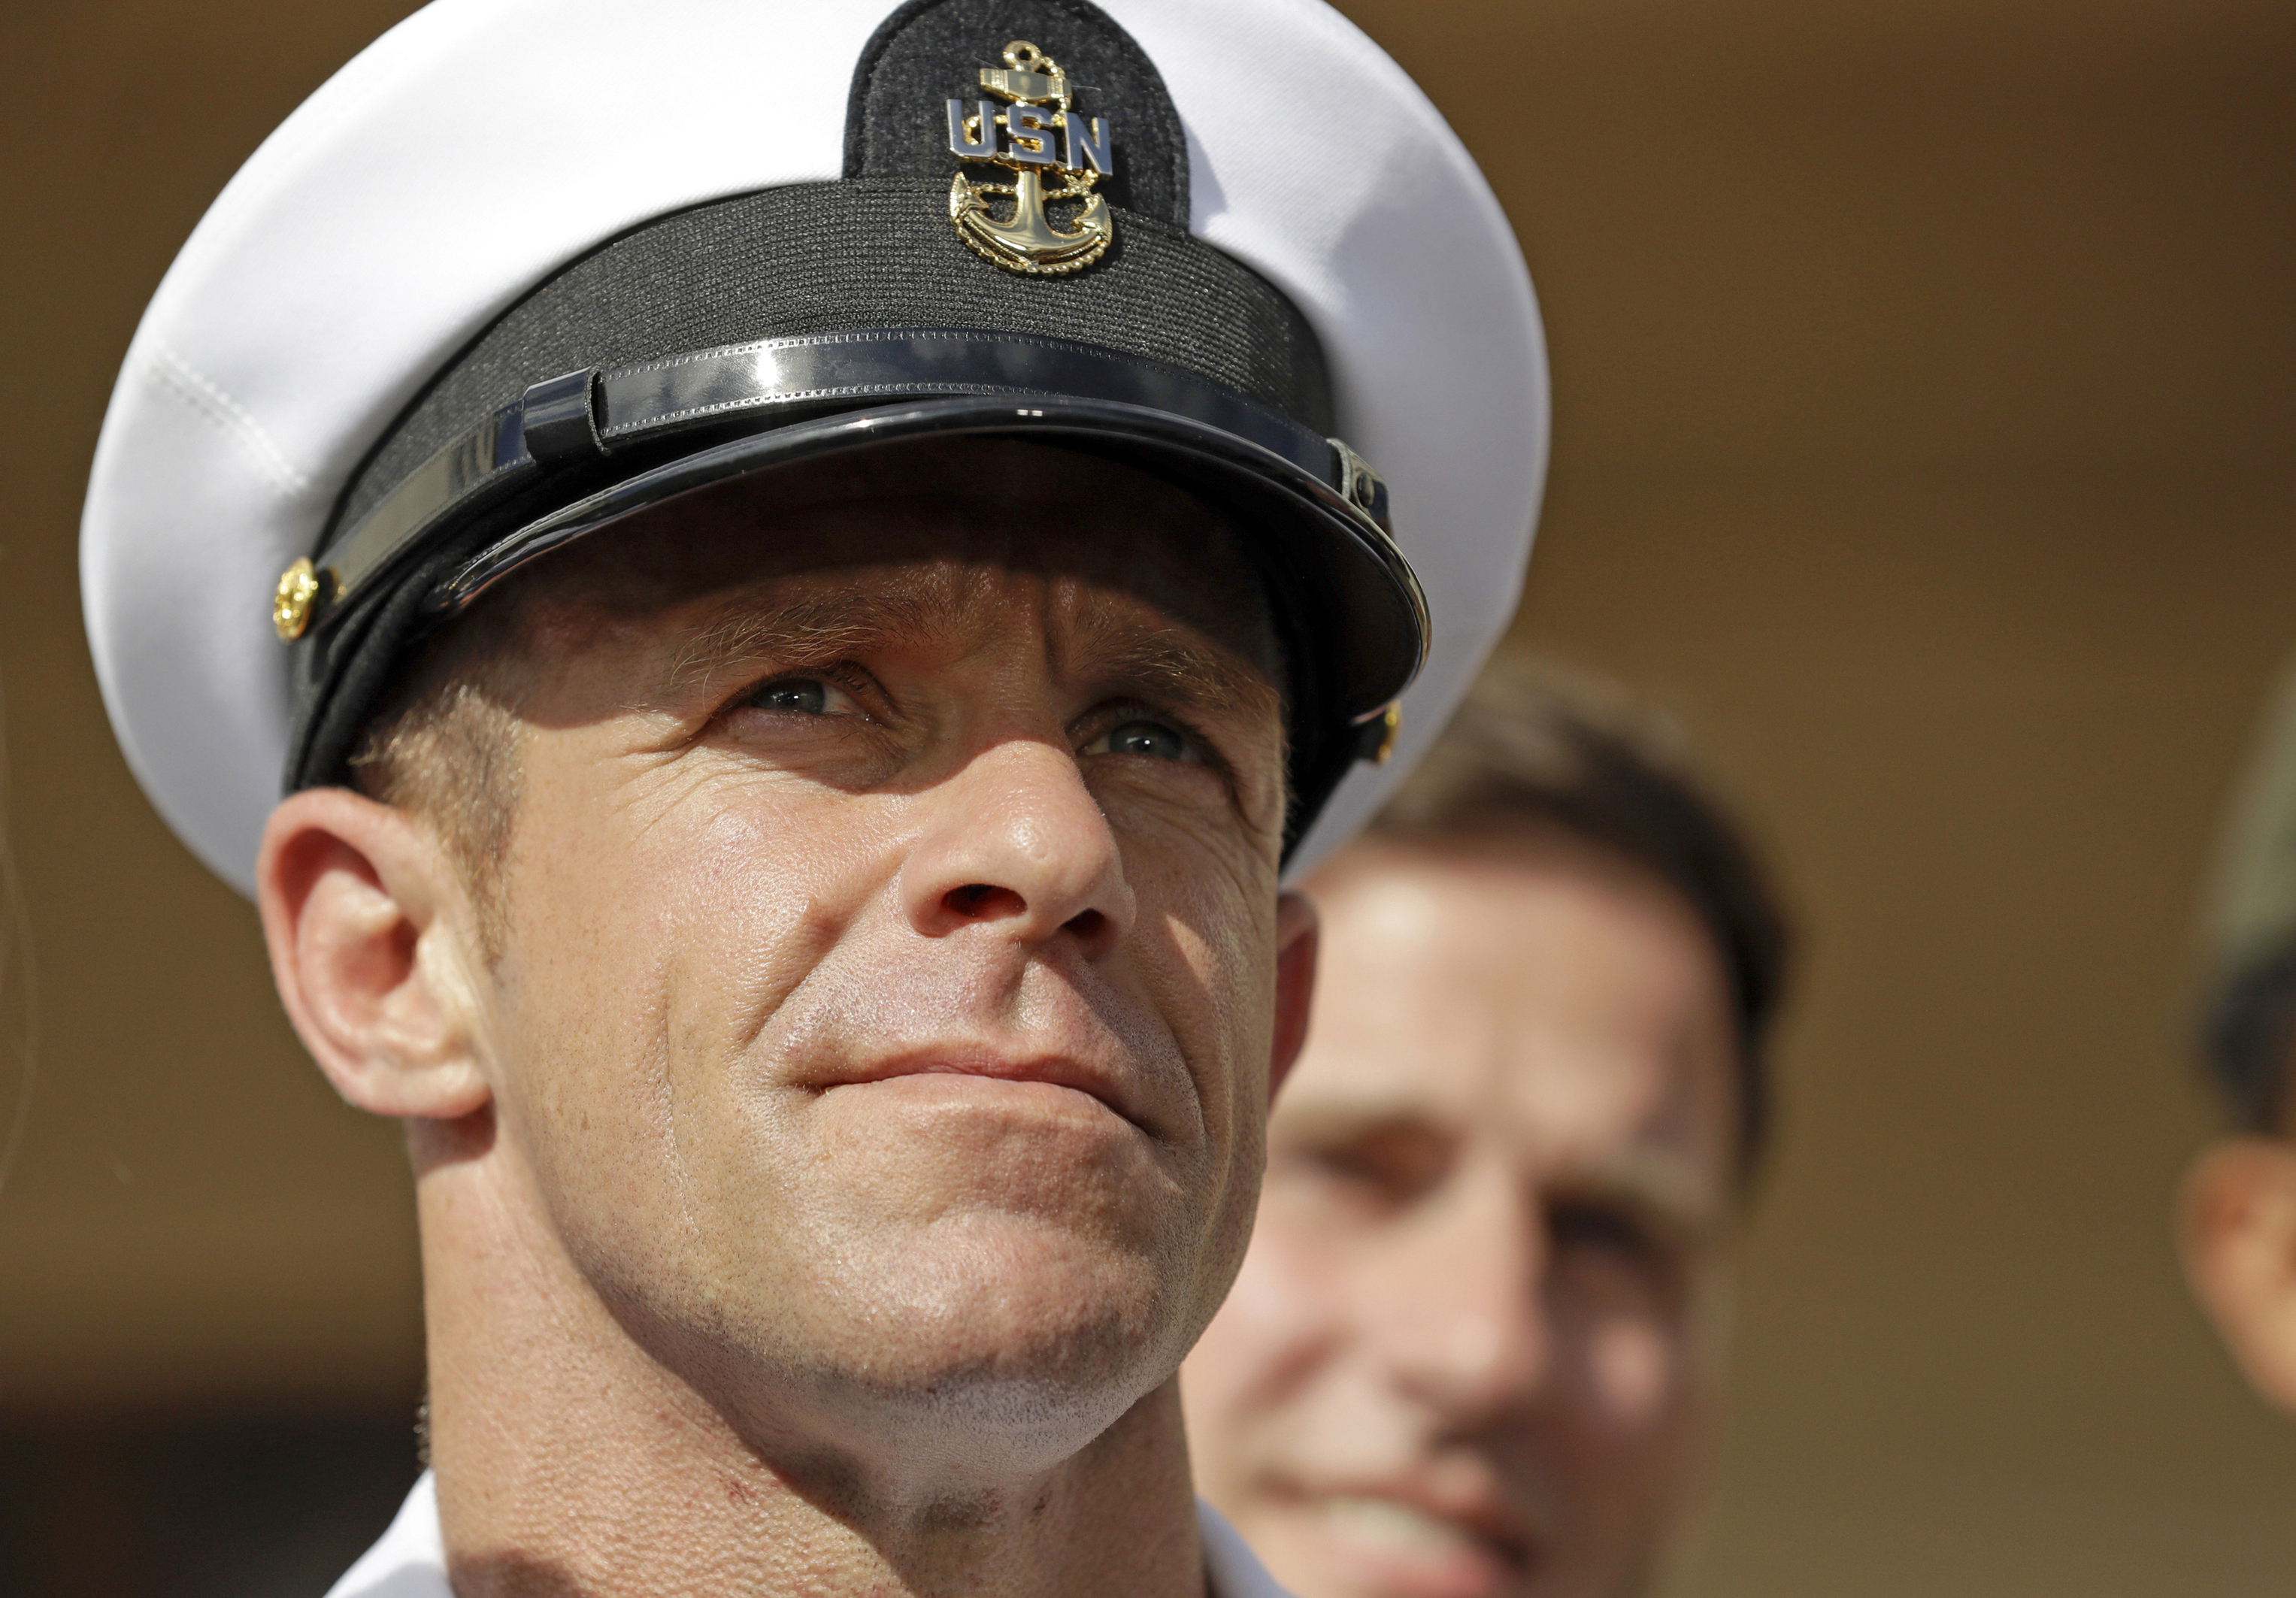 From the Brig to Mar-a-Lago, Former Navy SEAL Capitalizes on Newfound Fame